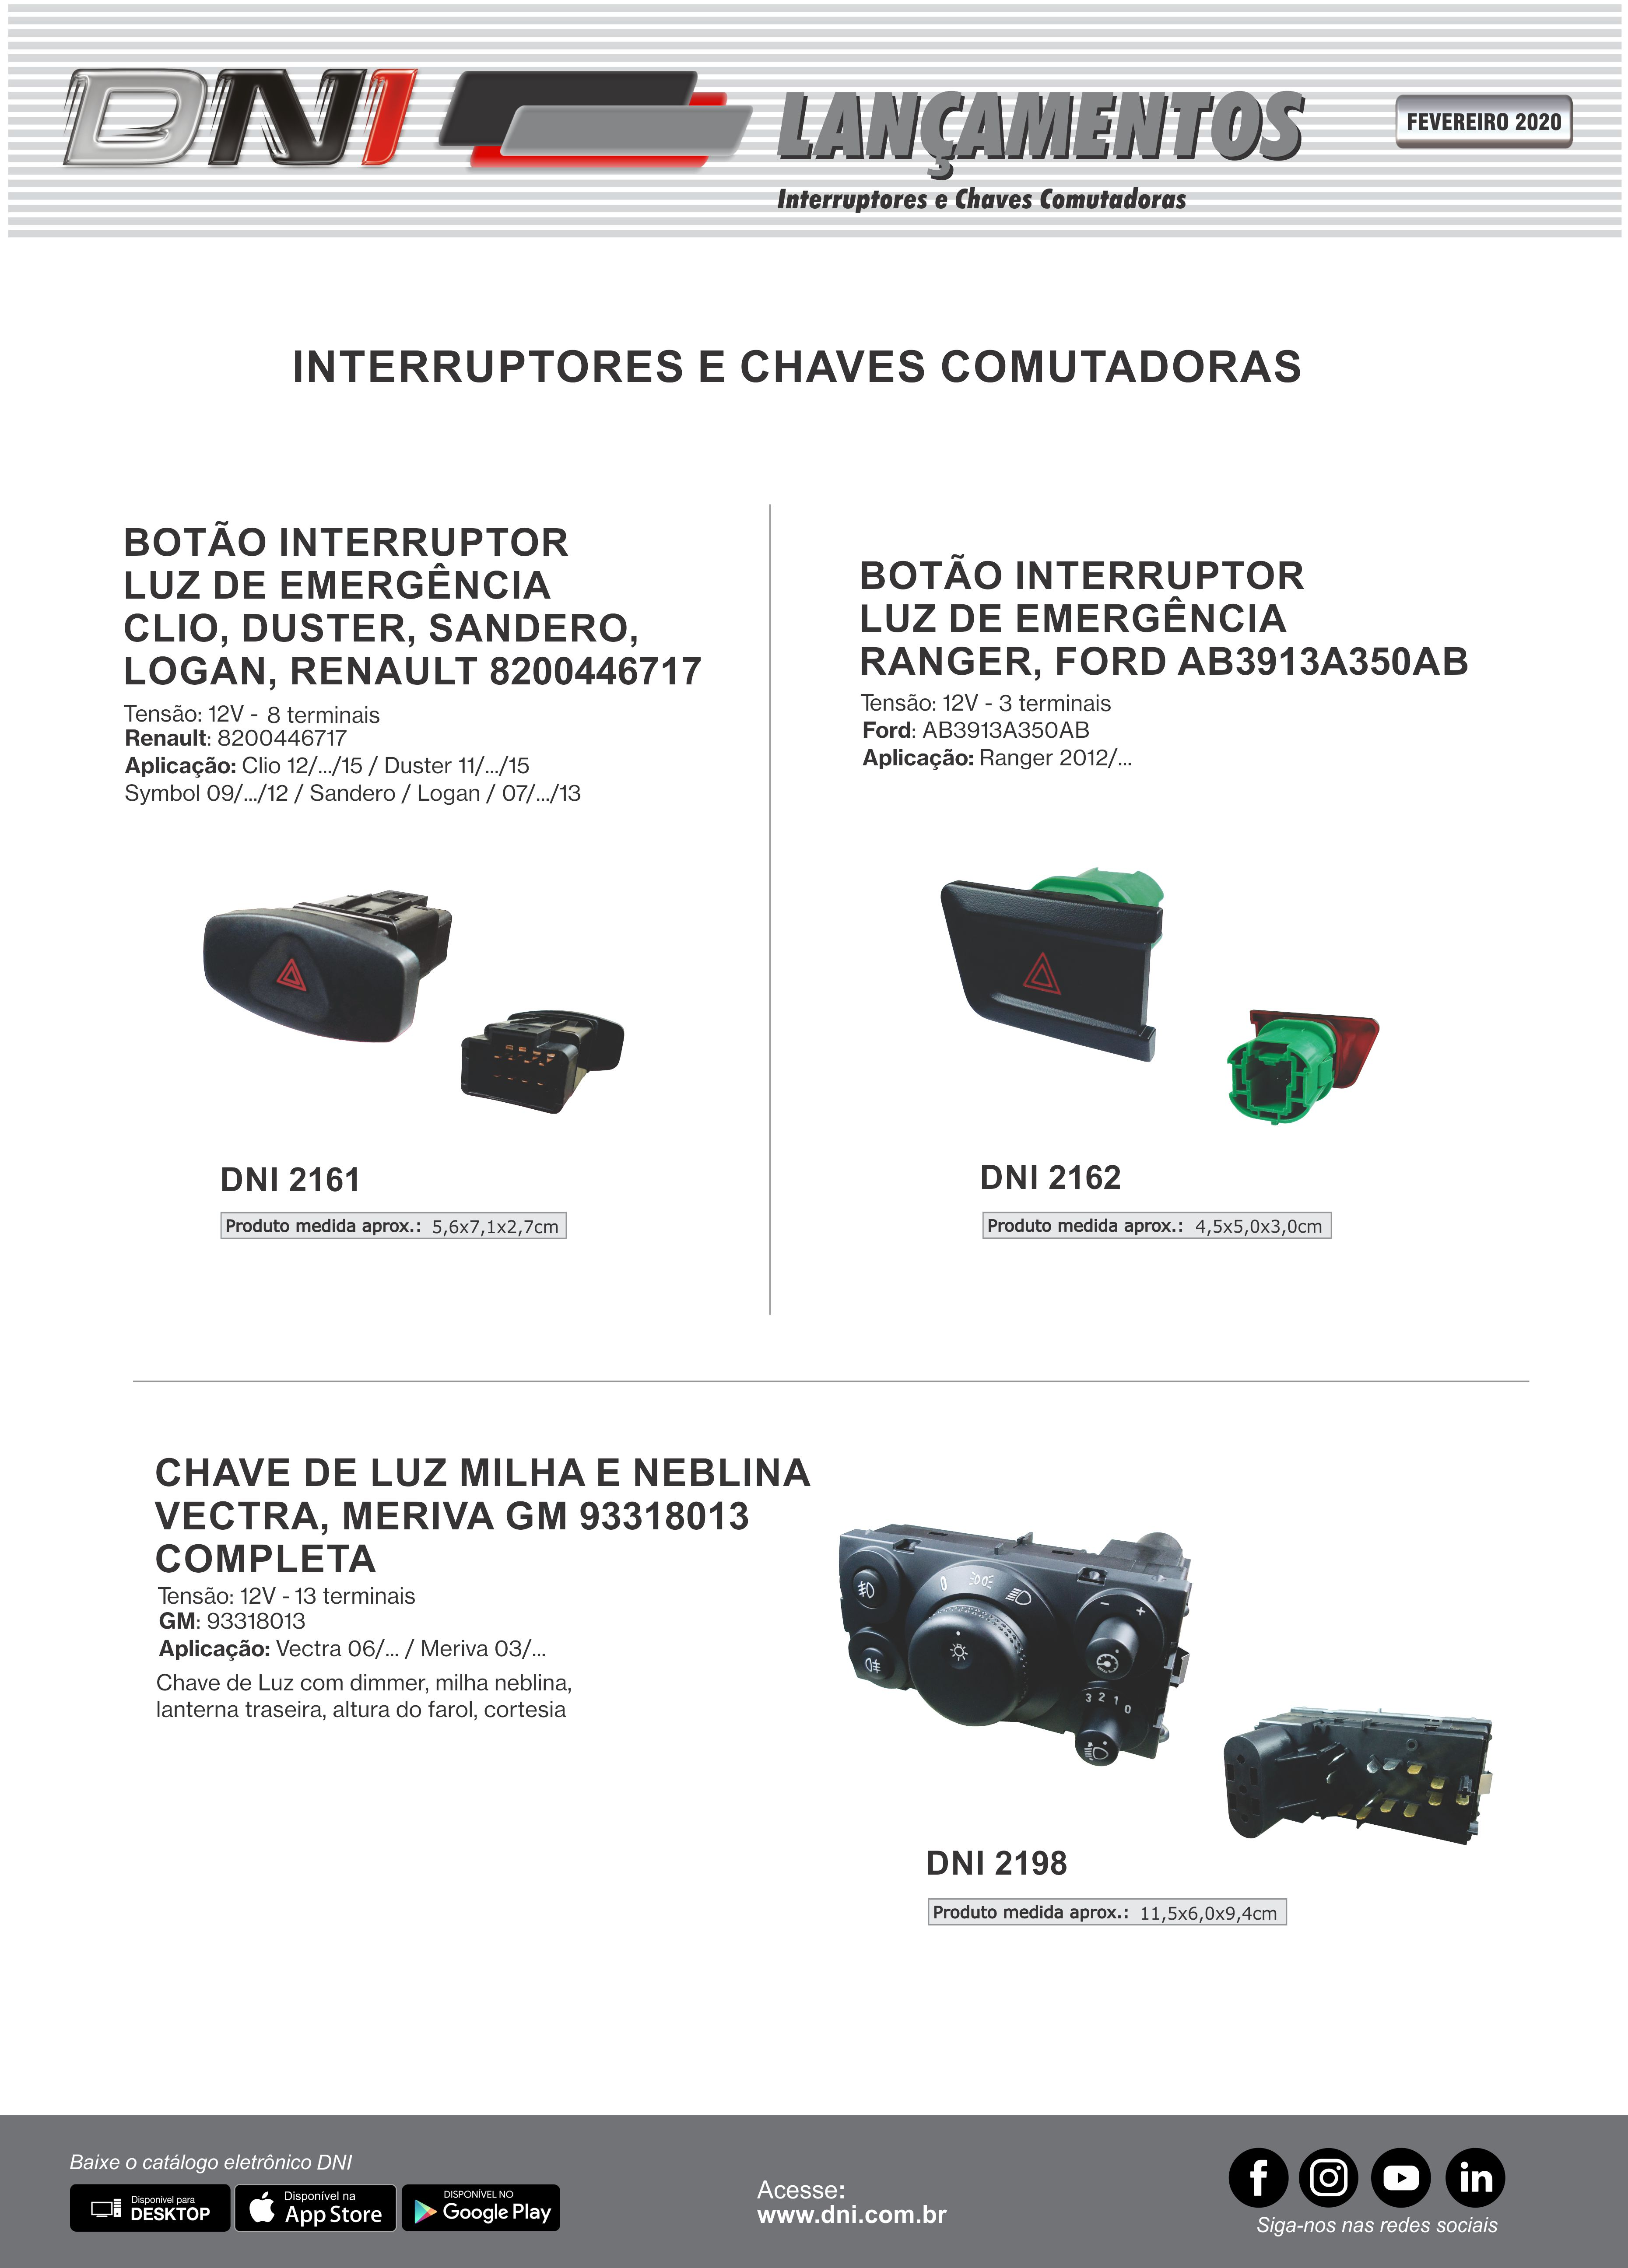 Emergency Switches and Light Switch Ford, Renault, GM - FEV/20